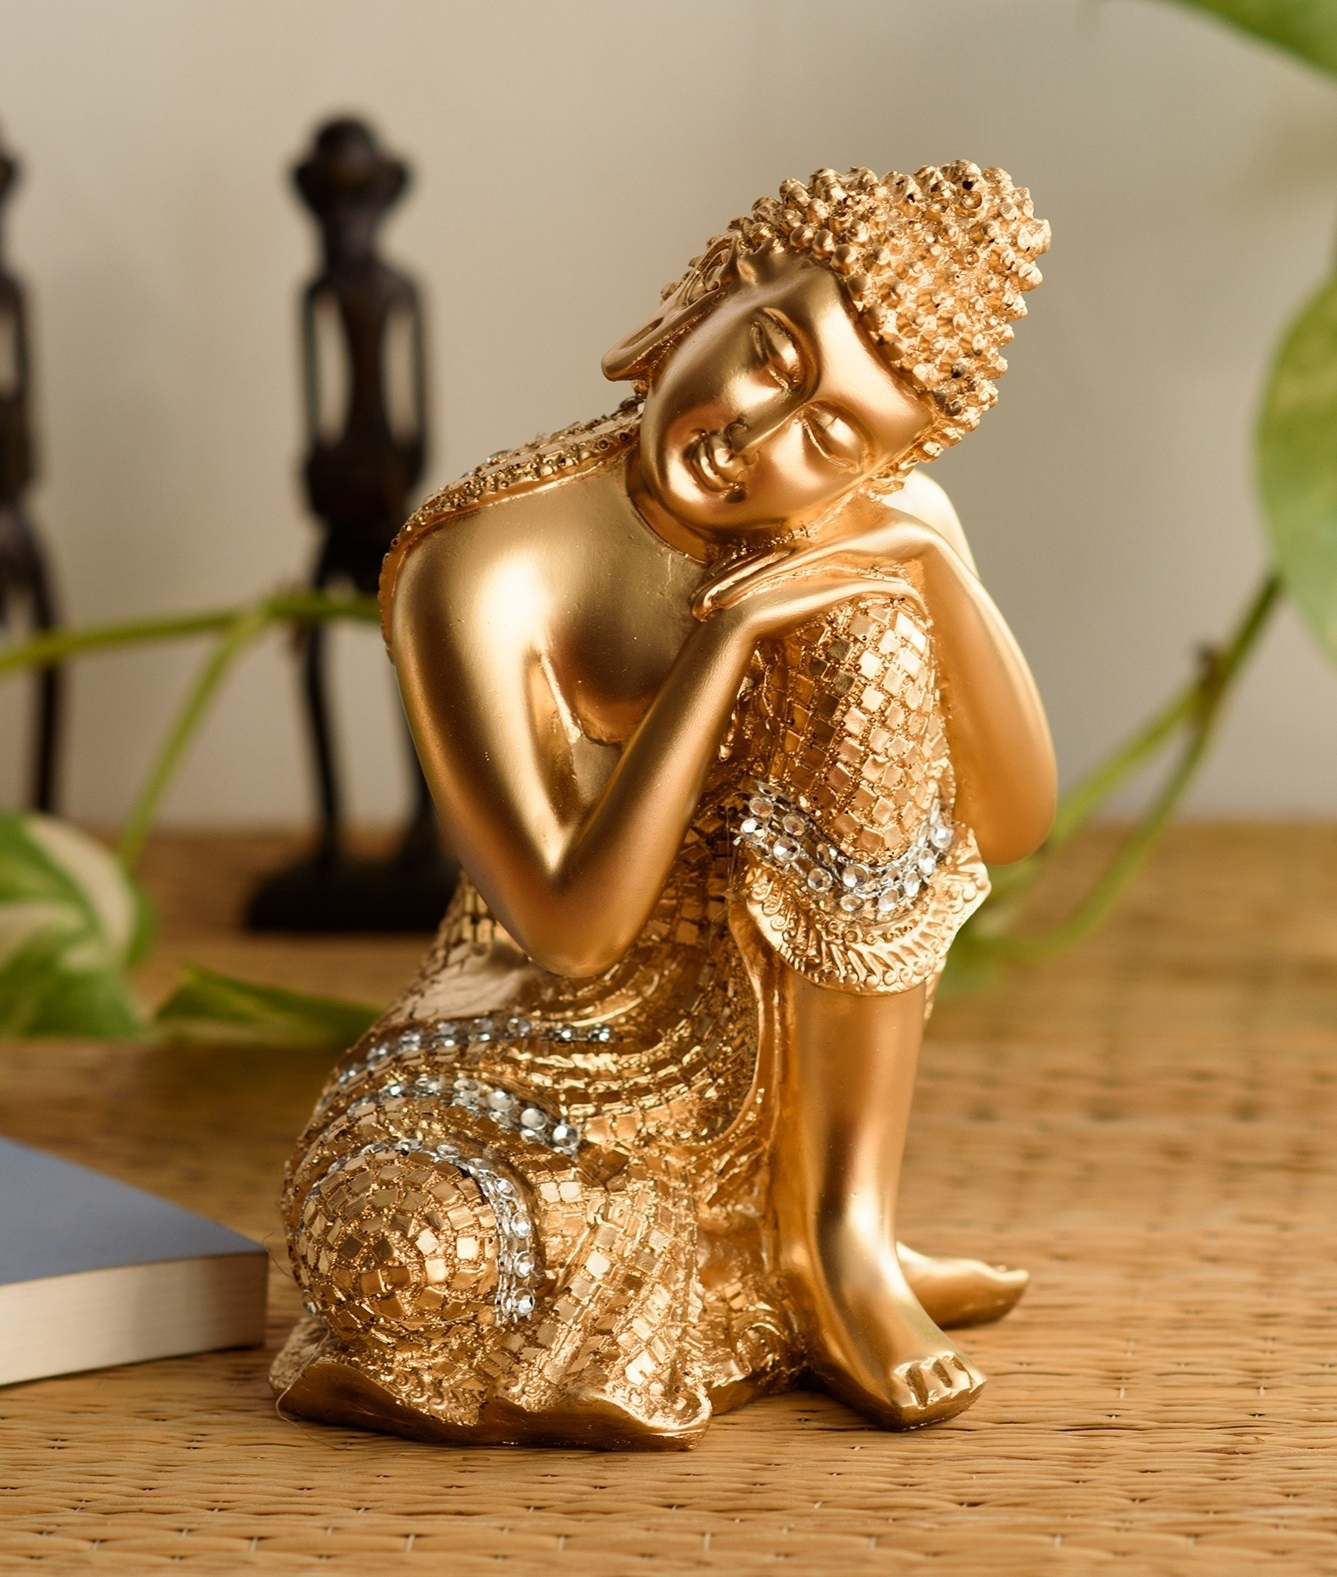 Golden Buddha on Knee Polyresin Showpiece Indian Home Decor